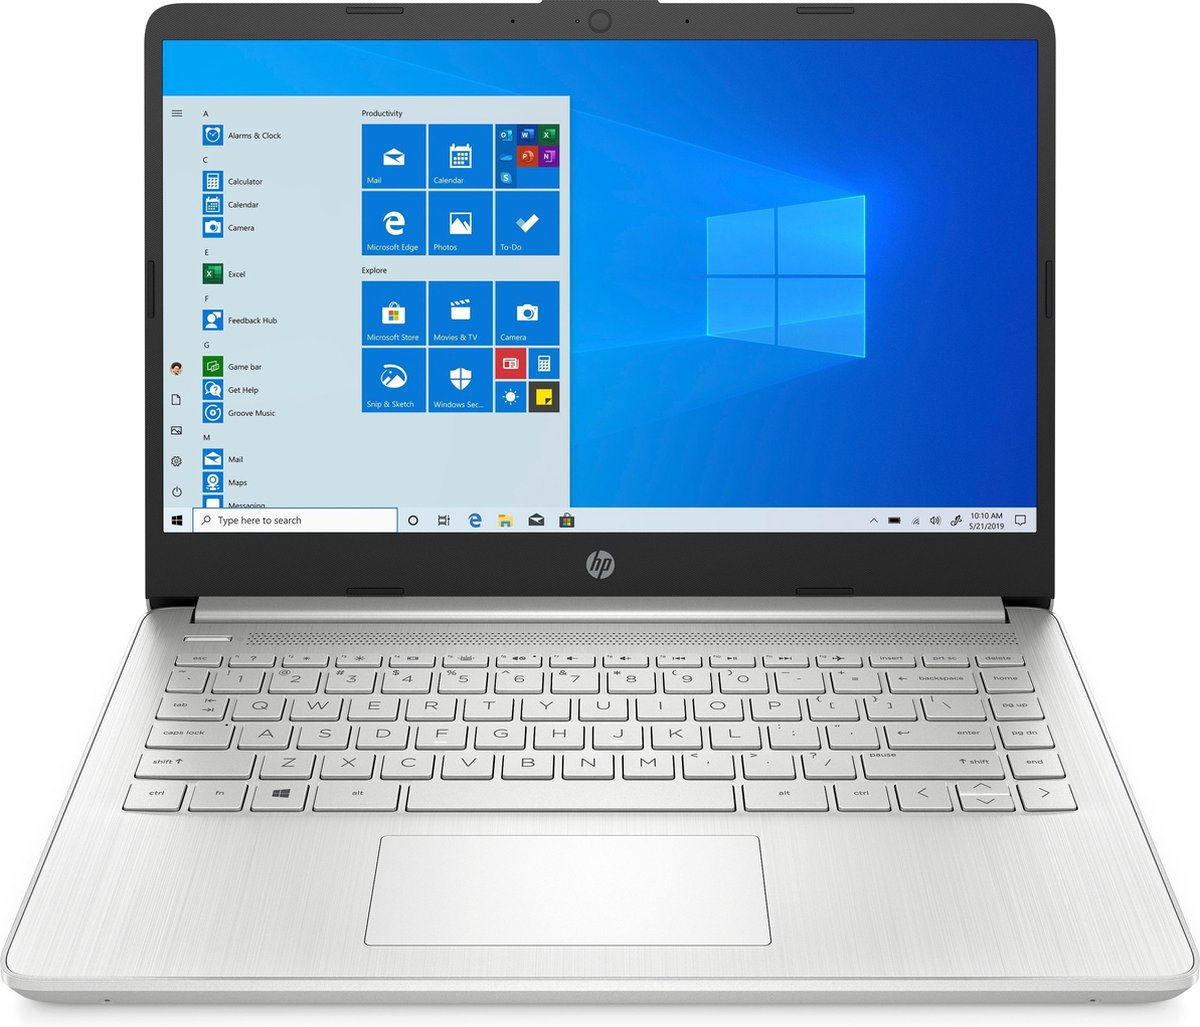 HP 14s-dq0400nd - Laptop - 14 inch